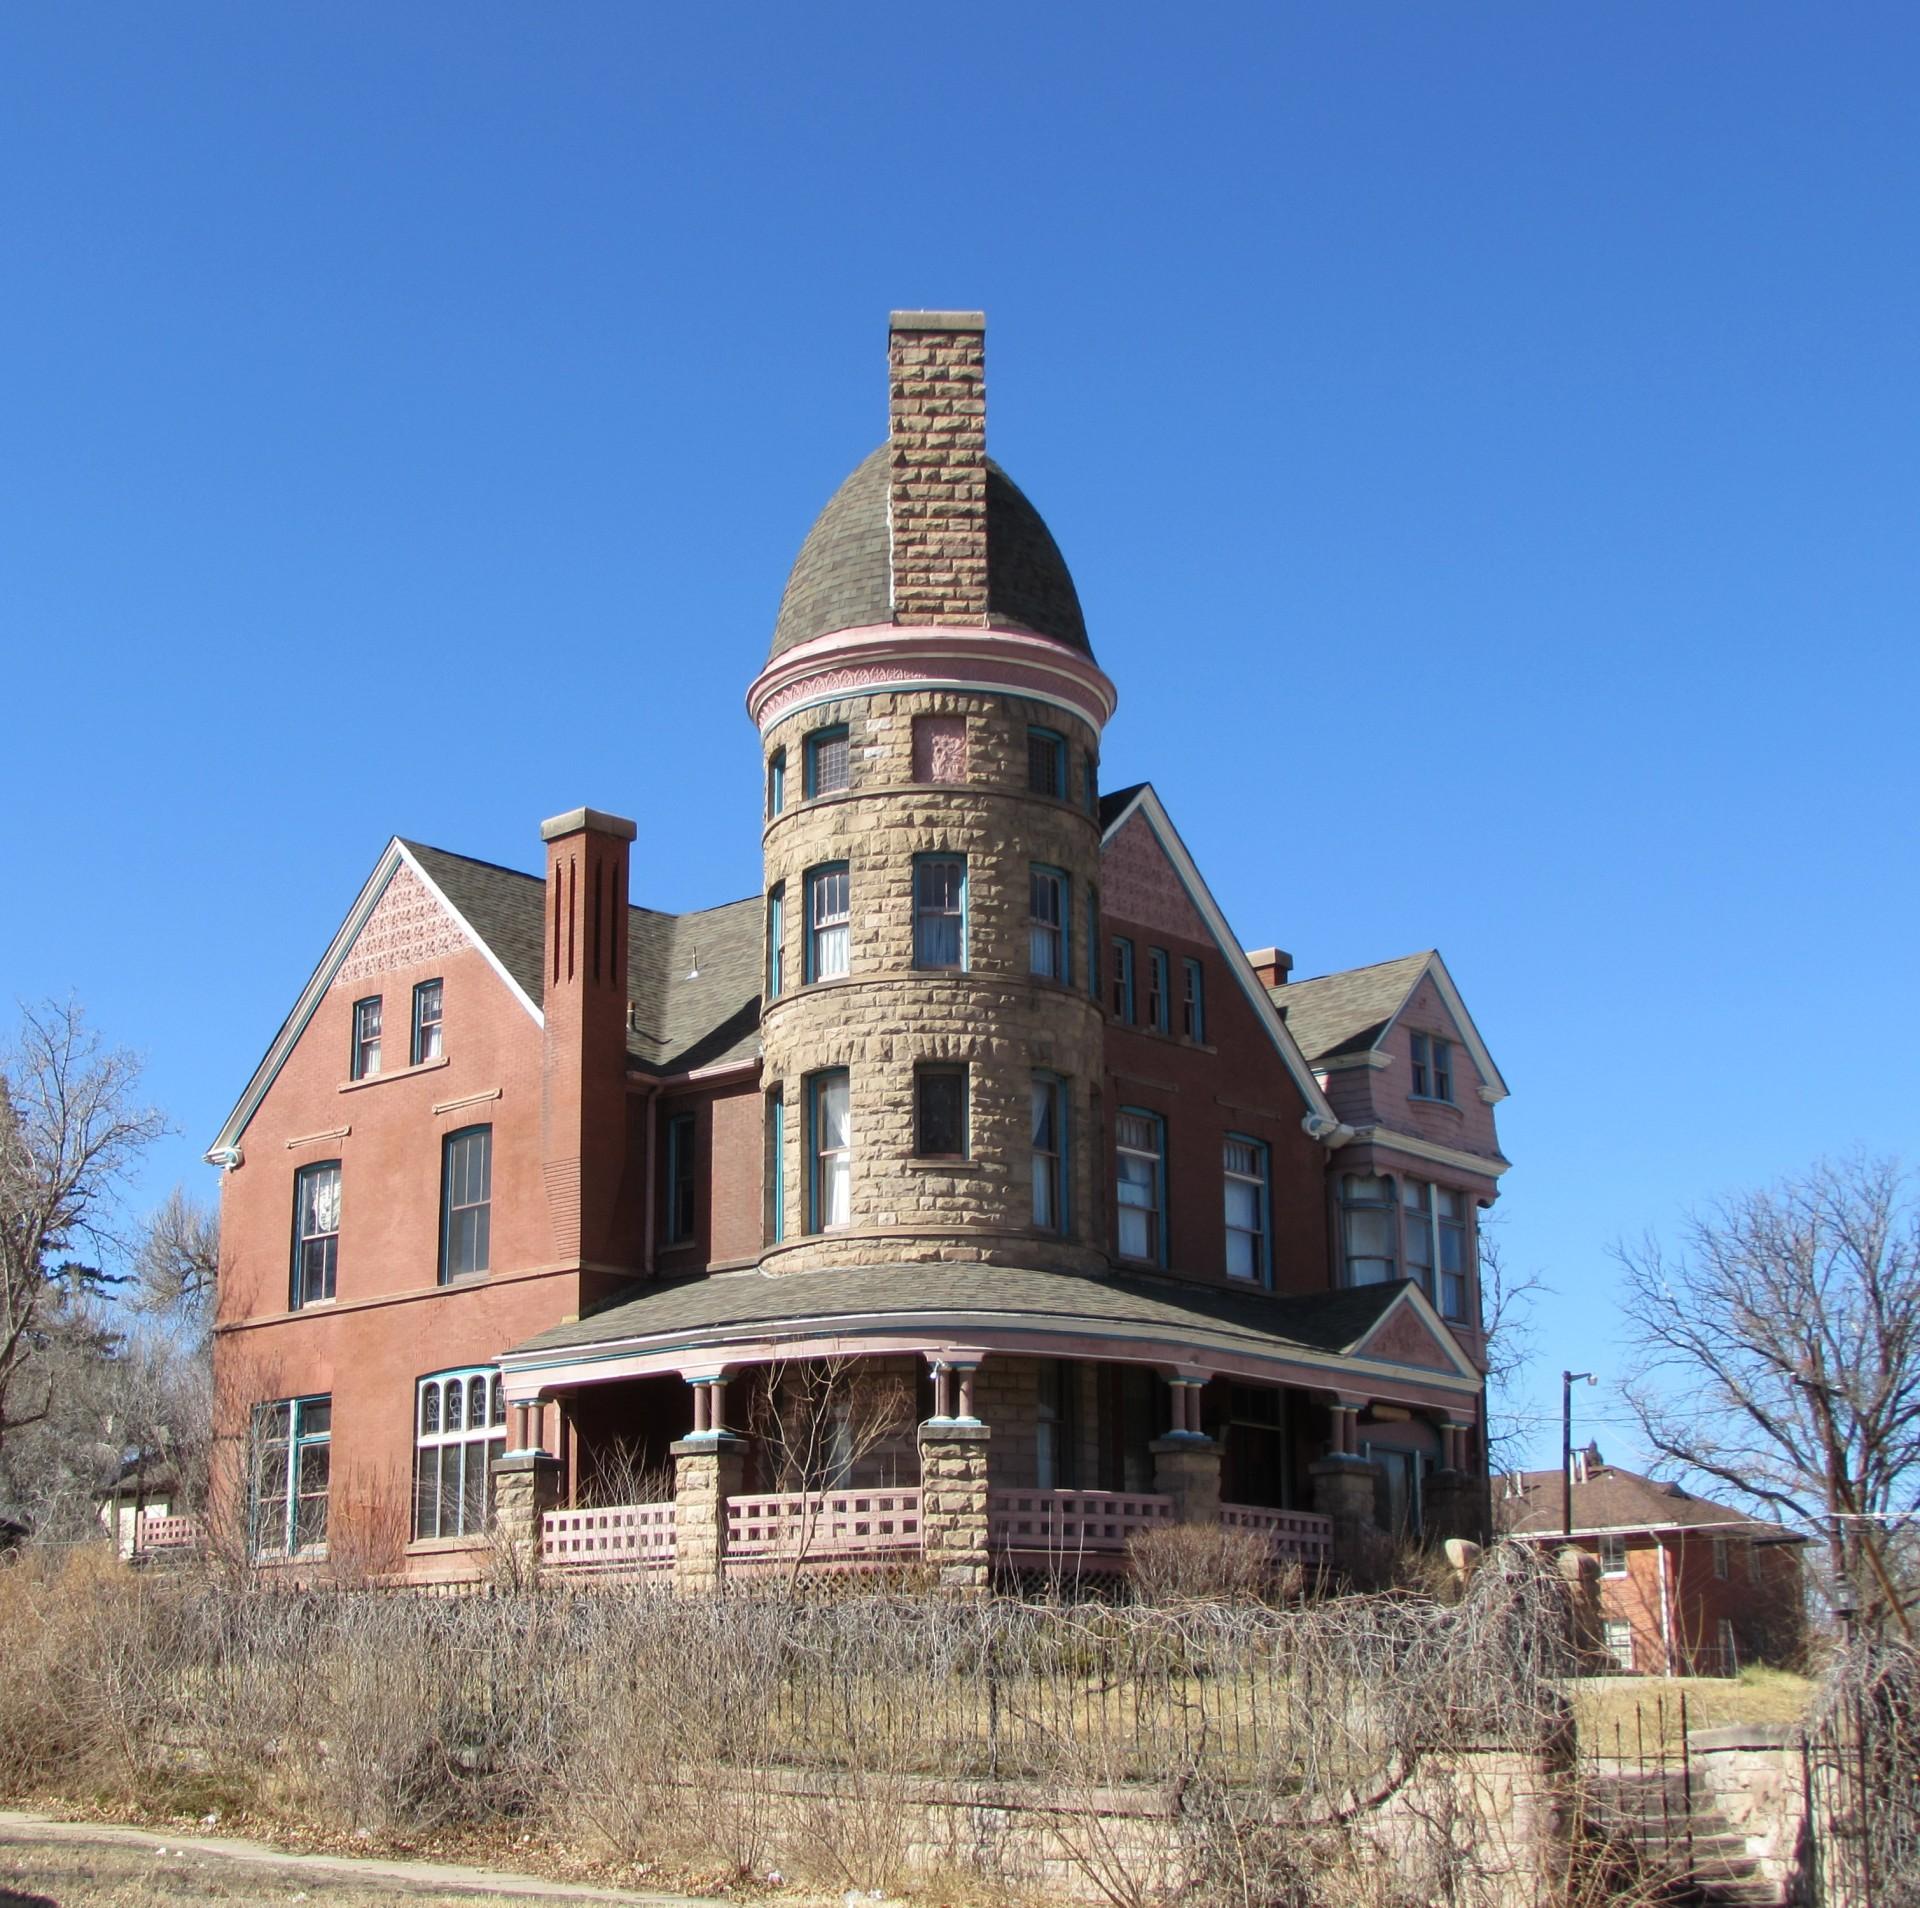 Groovy Historic Homes Of Pueblo Part One Beutiful Home Inspiration Truamahrainfo